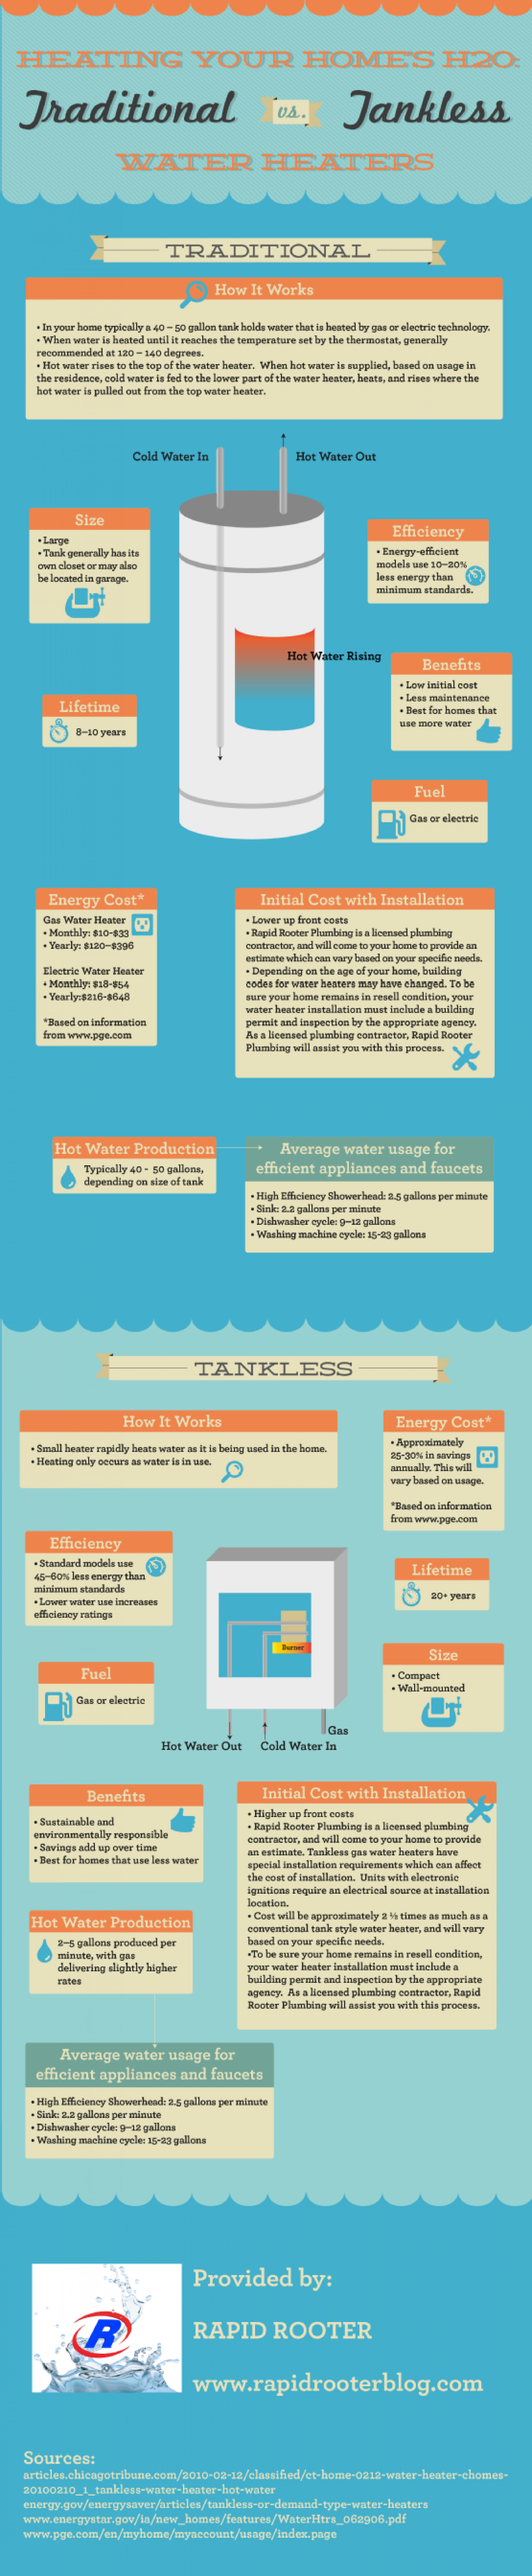 Heating Your Home's H2O: Traditional vs. Tankless Water Heaters Infographic